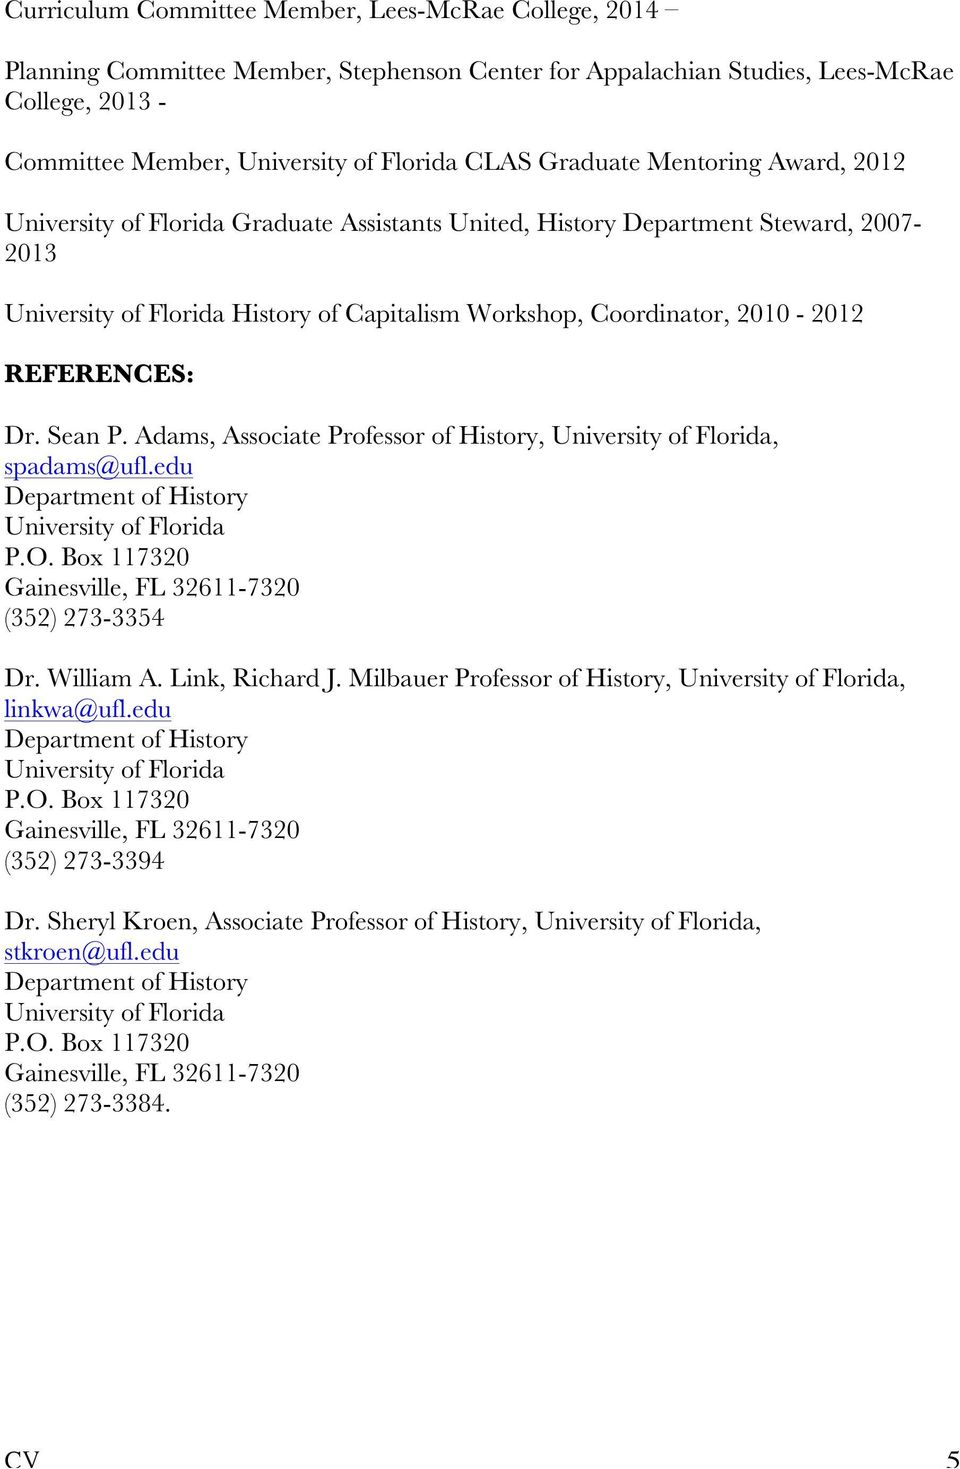 Workshop, Coordinator, 2010-2012 REFERENCES: Dr. Sean P. Adams, Associate Professor of History,, spadams@ufl.edu (352) 273-3354 Dr. William A.